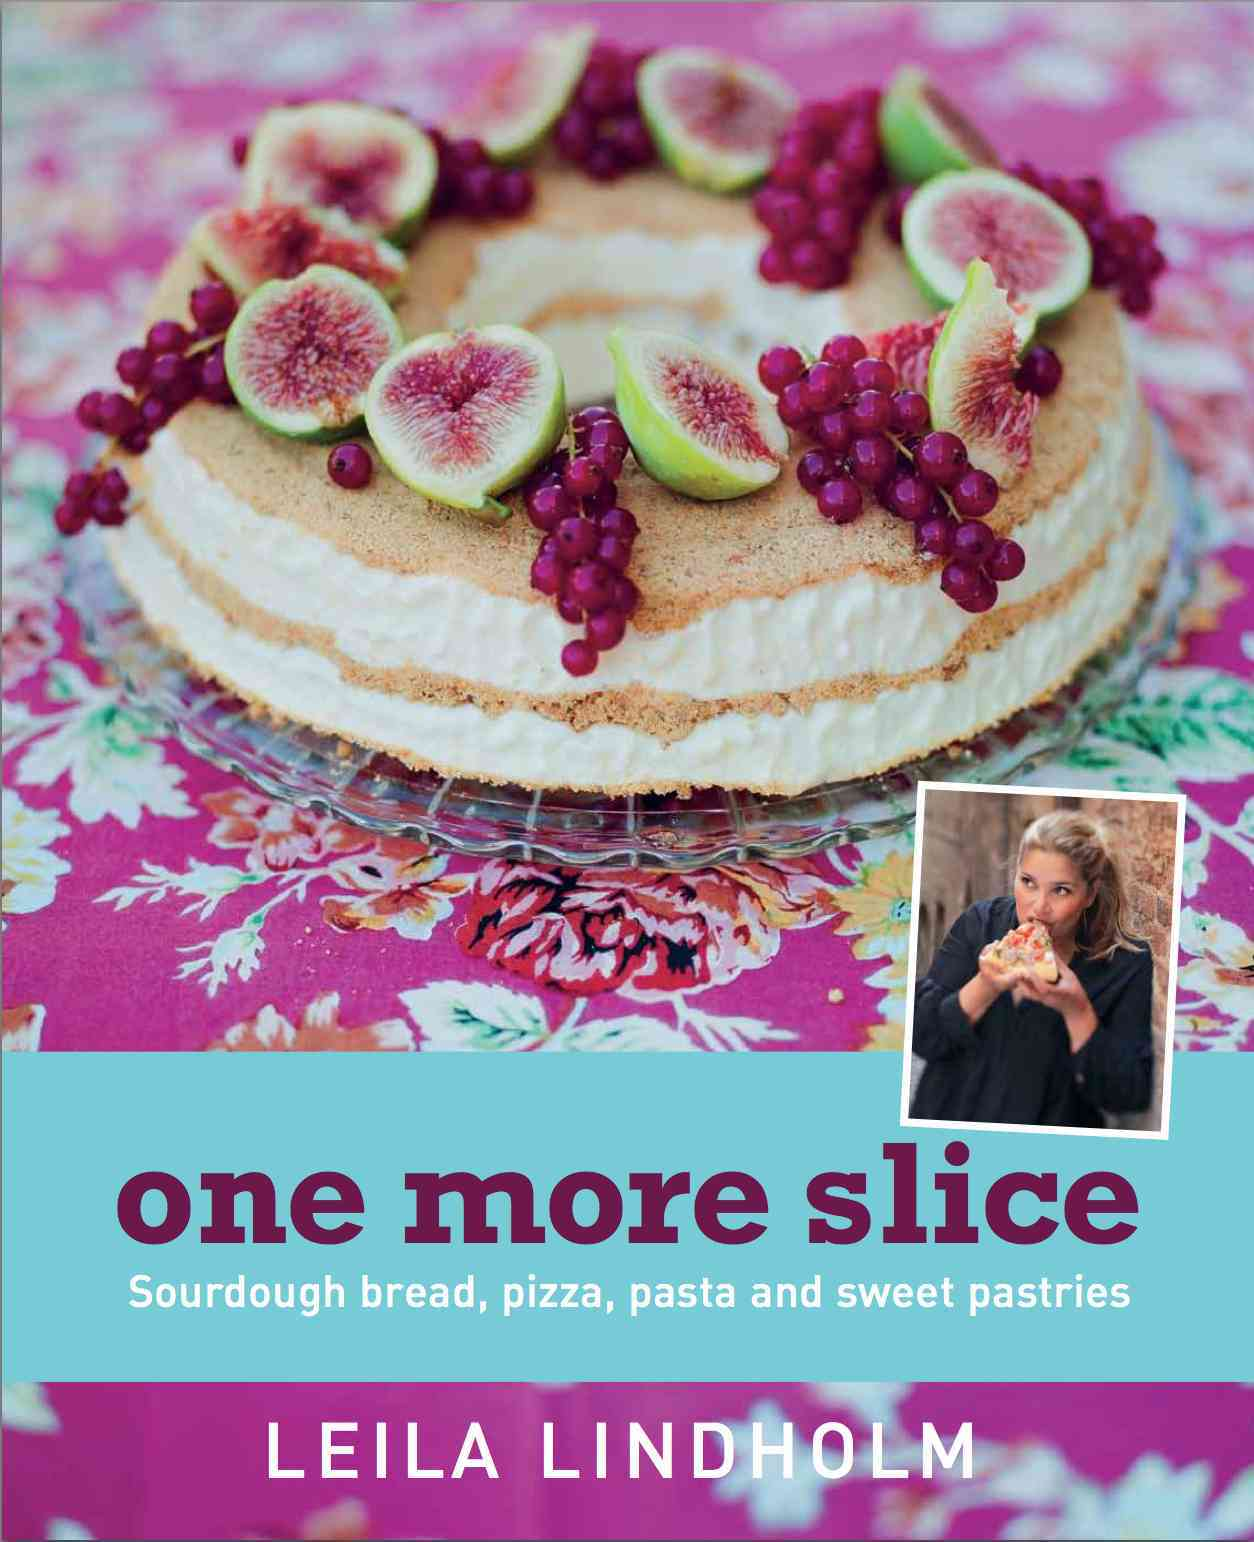 One More Slice: Sourdough Bread, Pizza, Pasta and Sweet Pastries (Paperback)